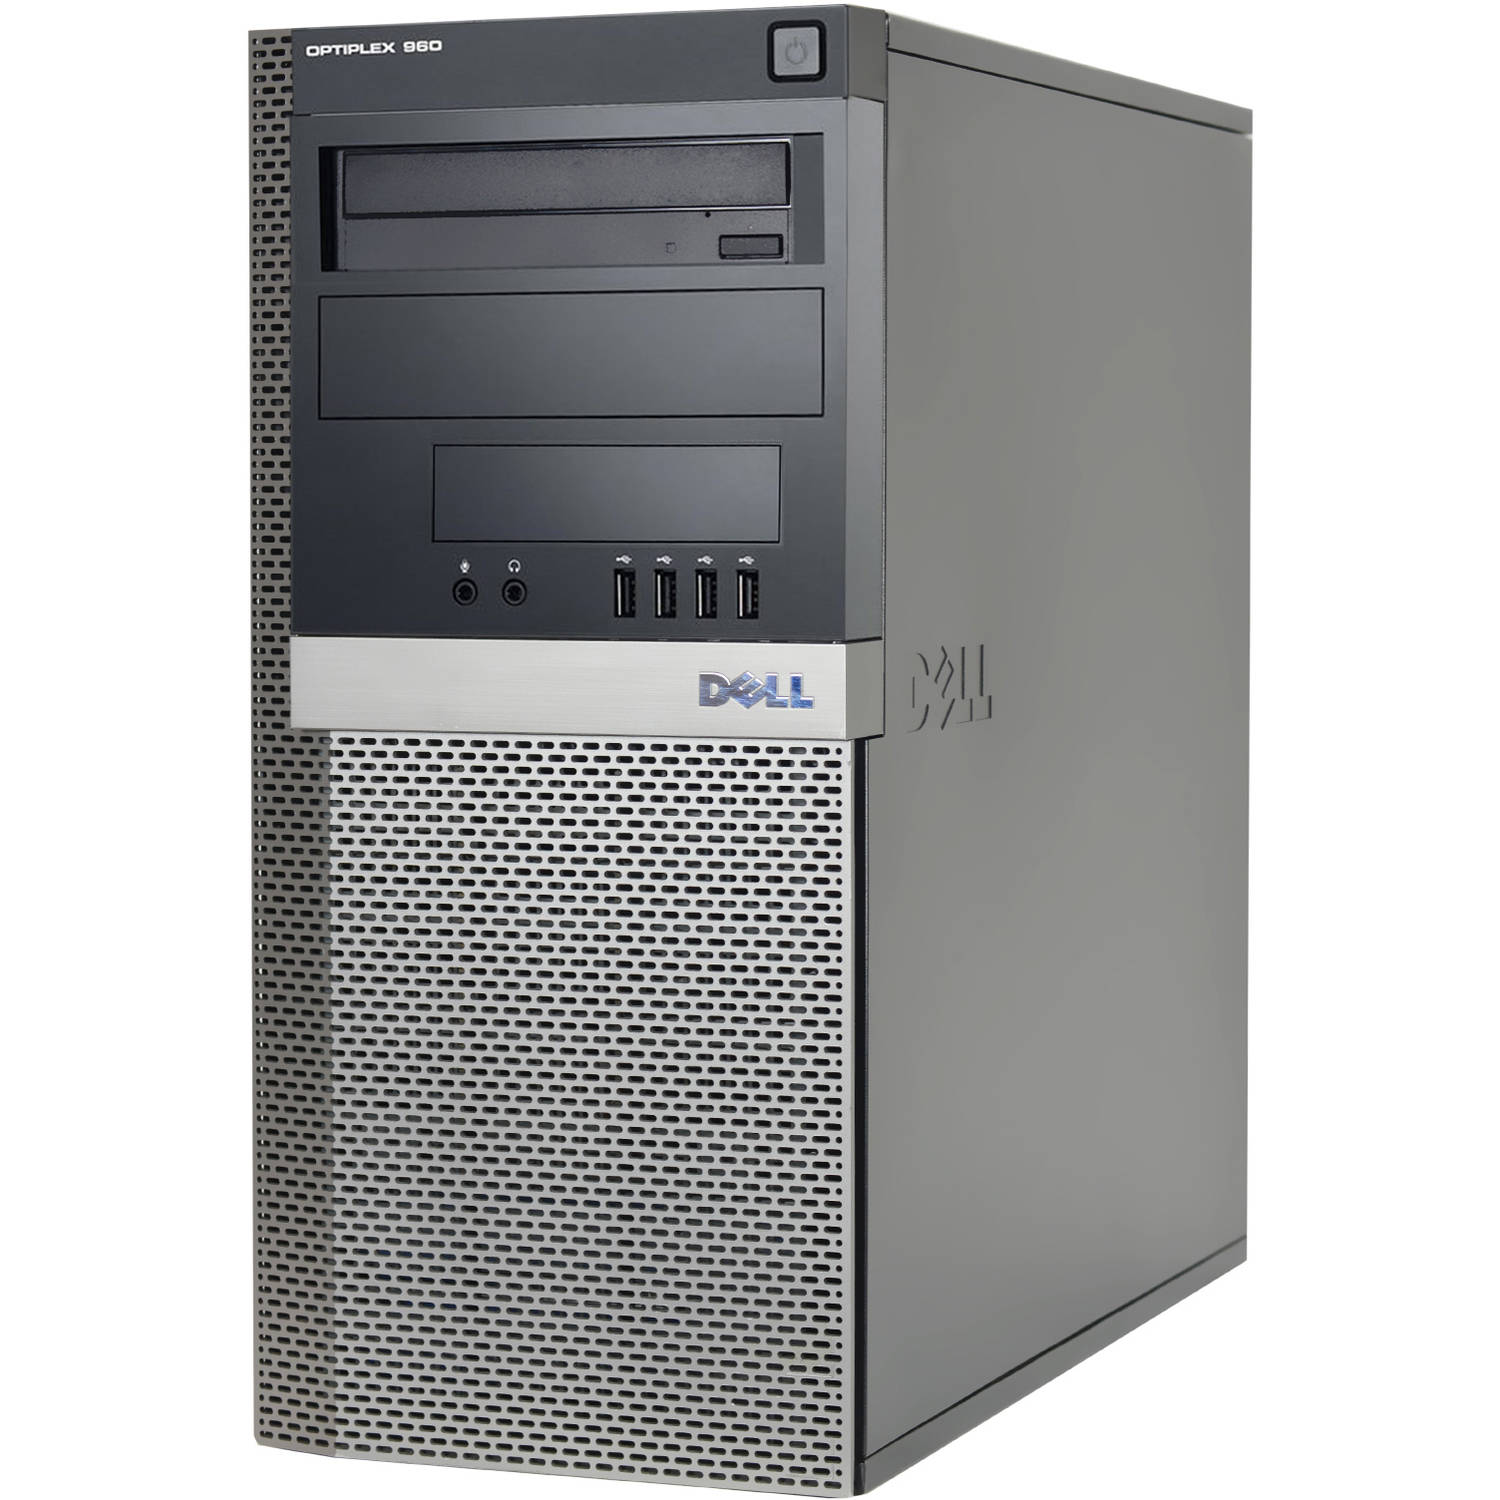 Refurbished Dell 960 Desktop PC with Intel Core 2 Duo Processor, 4GB Memory, 1.5TB Hard Drive and Windows 10 Pro (Monitor Not Included)